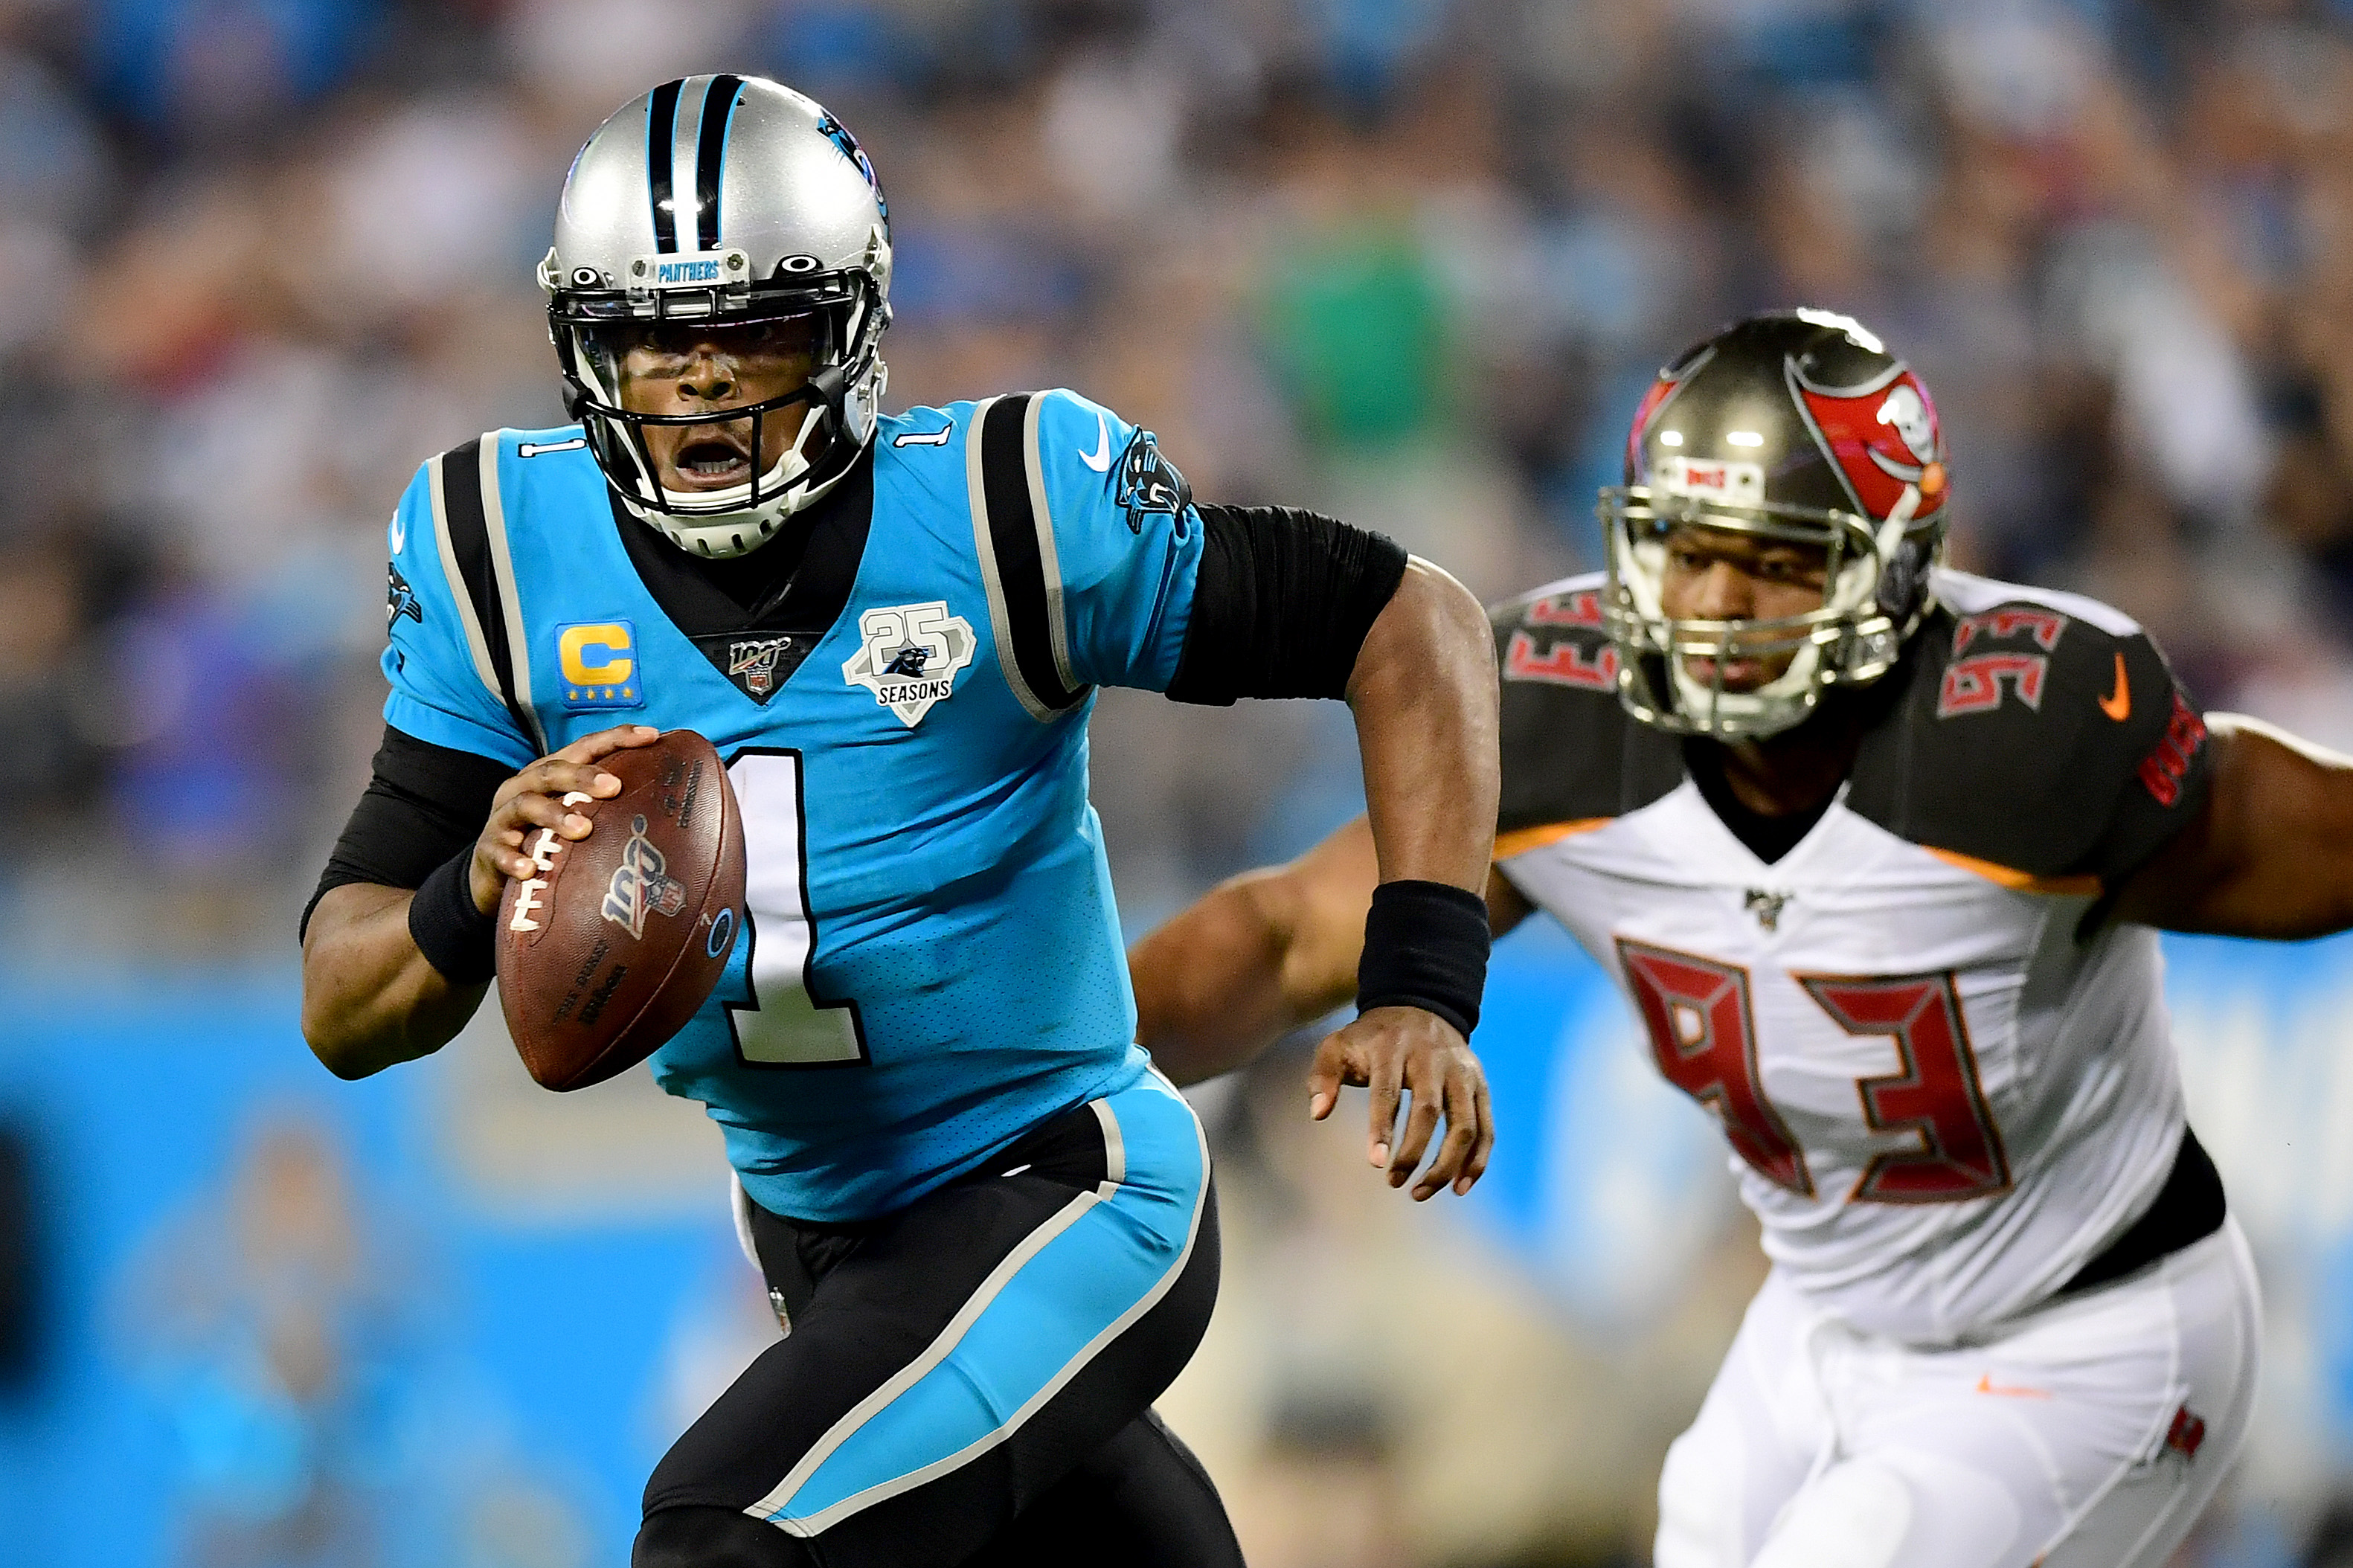 Has Cam Newton played his last game for the Panthers?